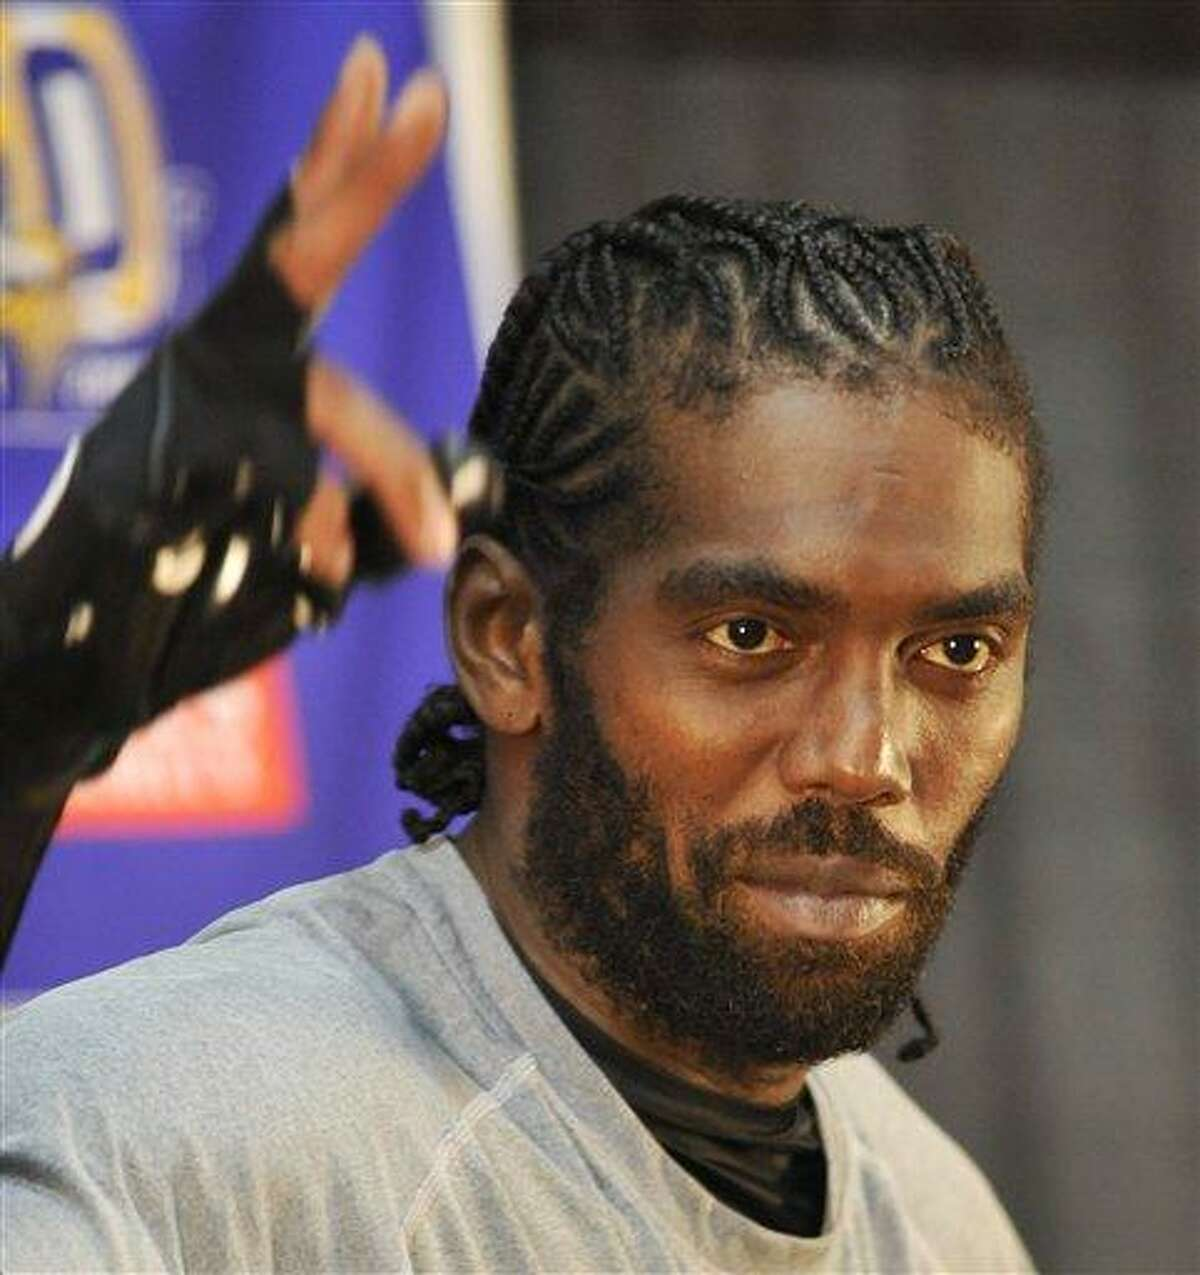 Minnesota Vikings new wide receiver Randy Moss answers a question at a news conference Thursday, Oct. 7, 2010 in Eden Prairie, Minn. Moss was traded Wednesday to the Vikings from the New England Patriots. (AP Photo/Jim Mone)